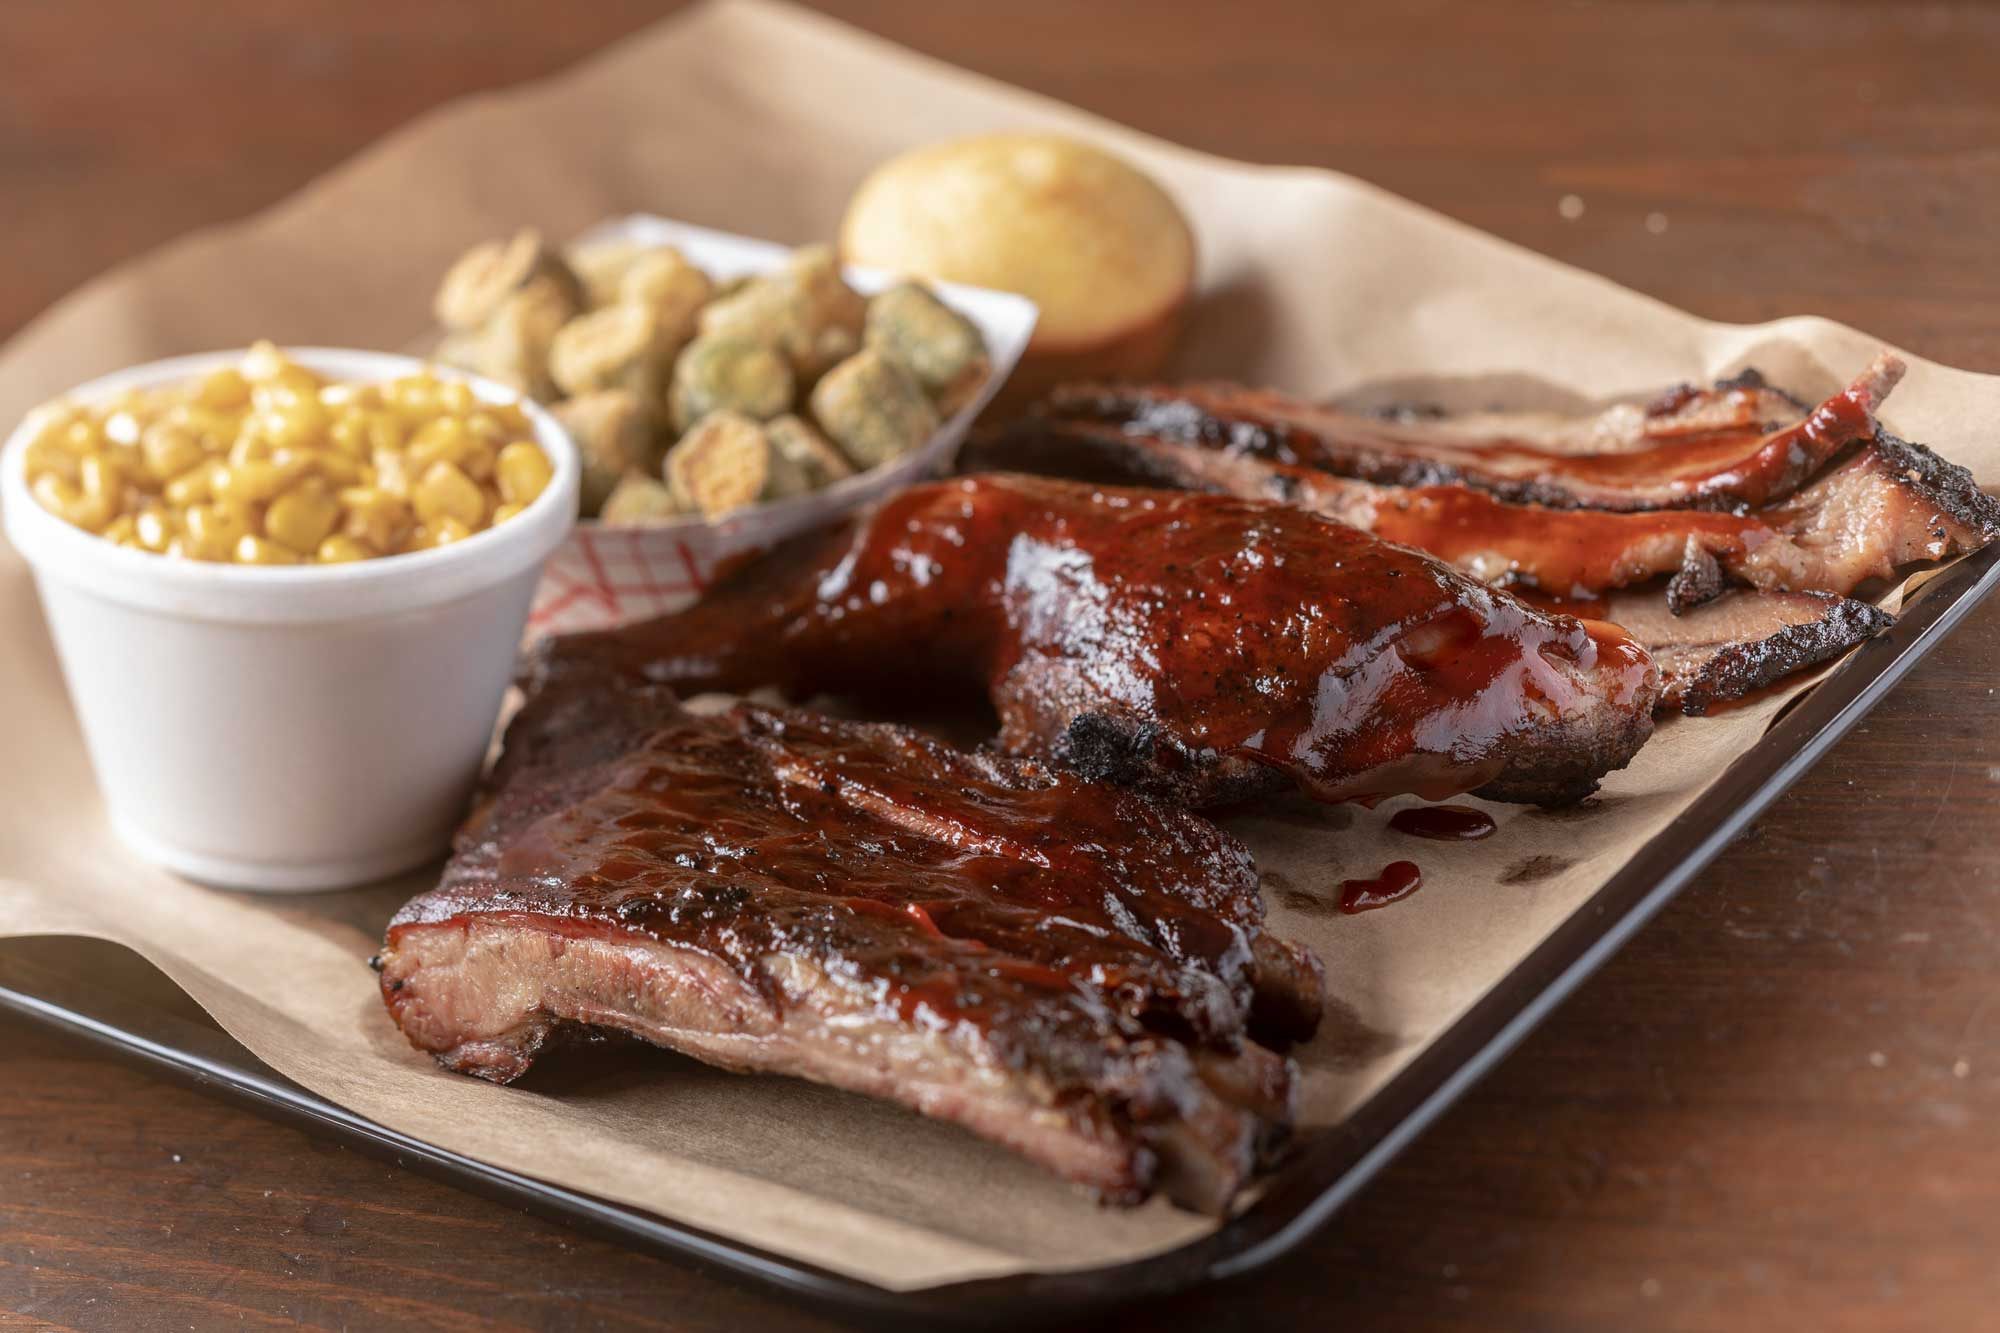 Smoked Ribs with side dishes by Bad to the Bone Barbecue